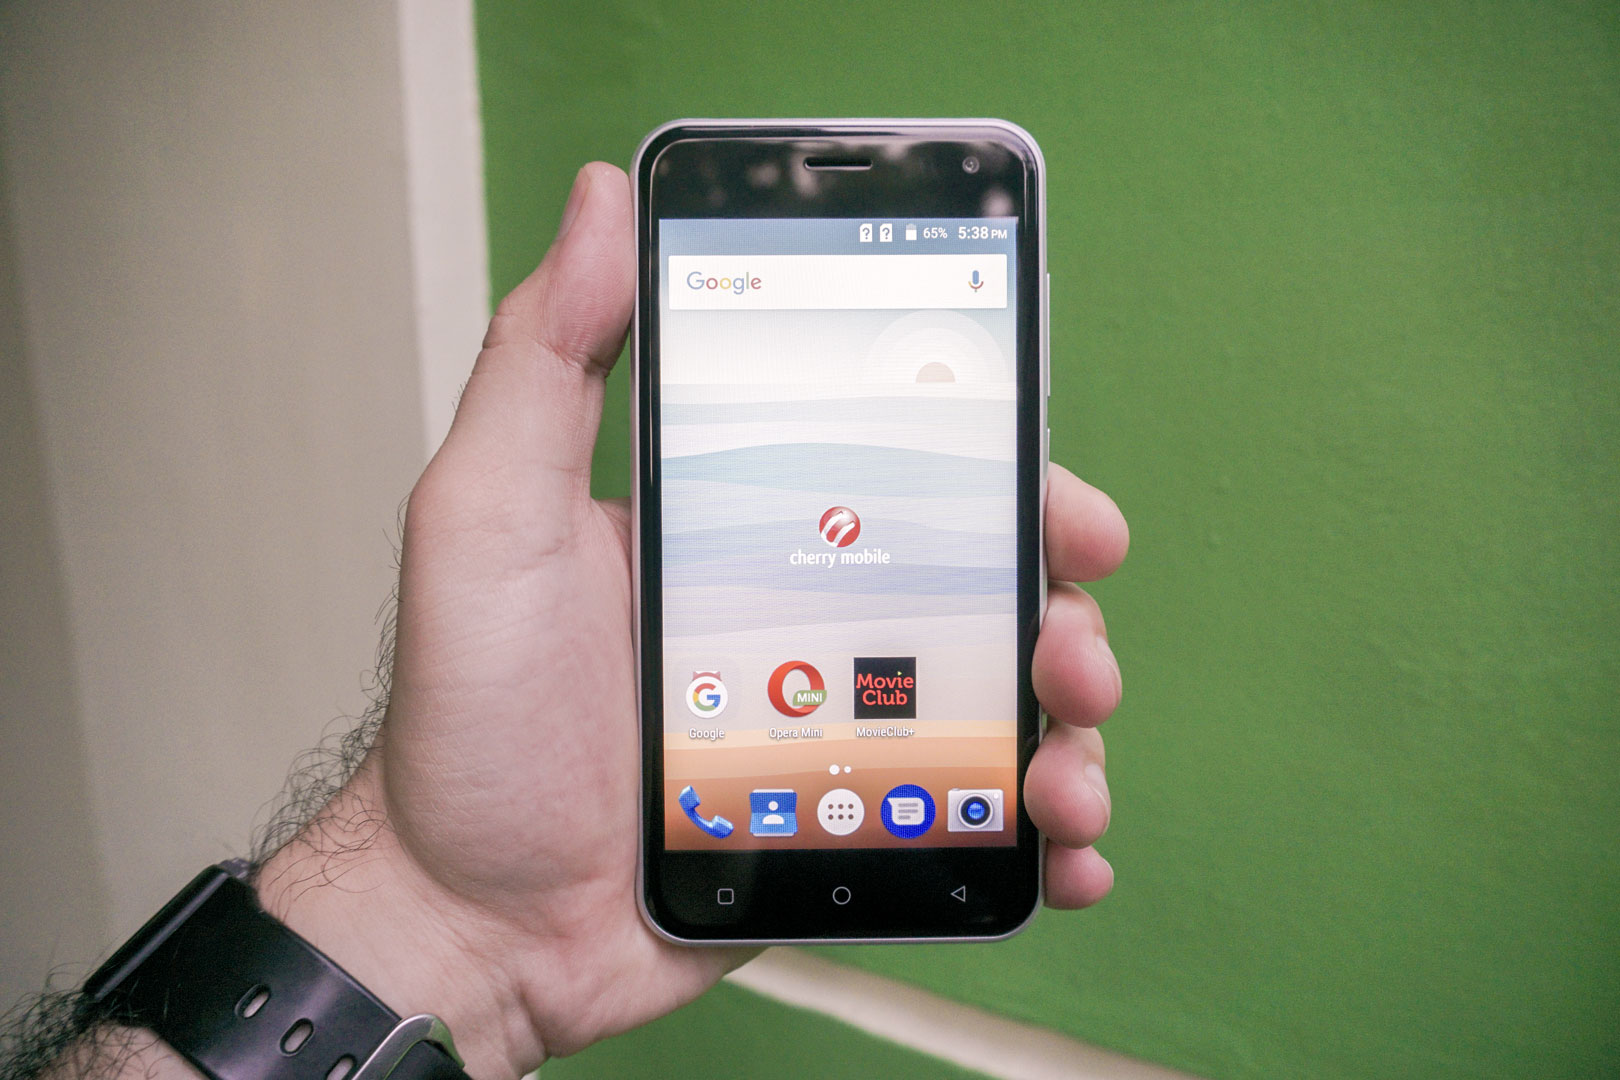 Cherry Mobile Flare J1 (2017) Review: Durable, But Perhaps